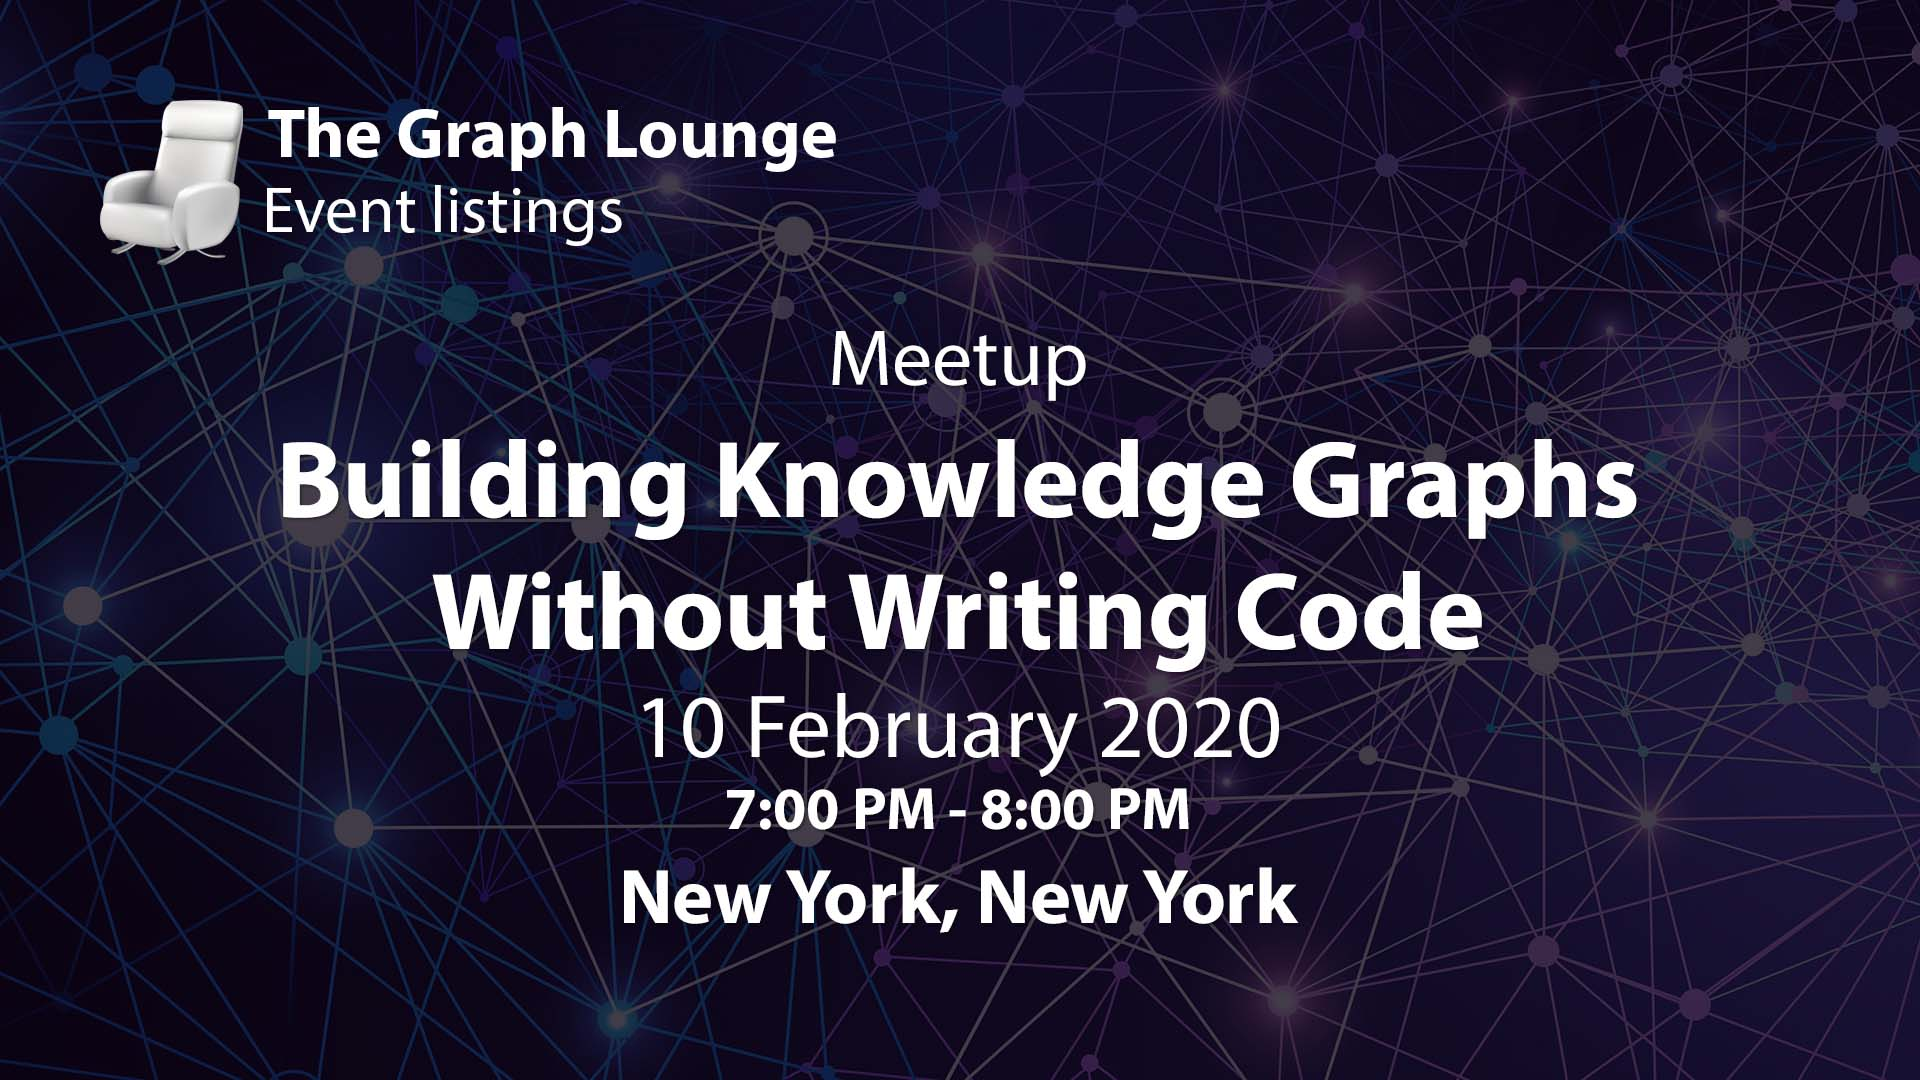 Building Knowledge Graphs Without Writing Code